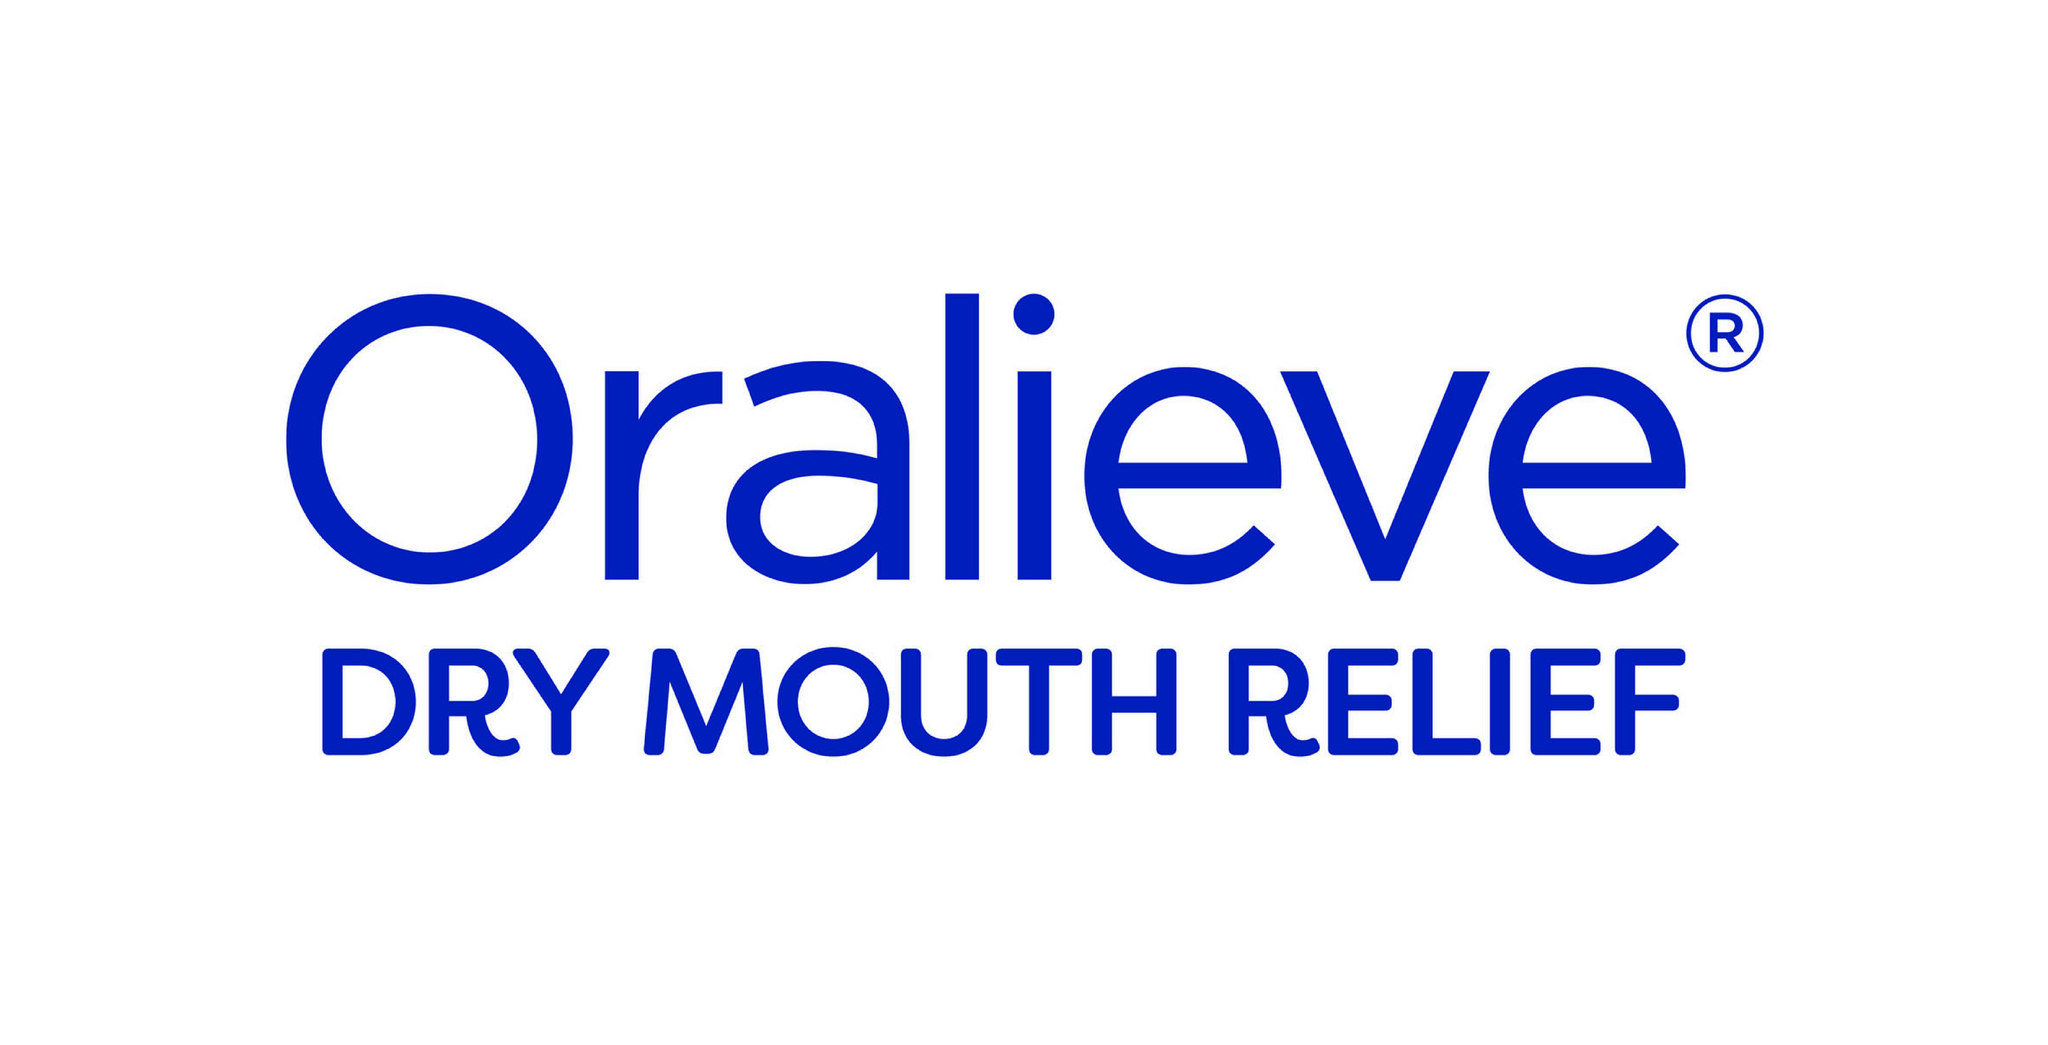 Oralieve Dry Mouth Relief